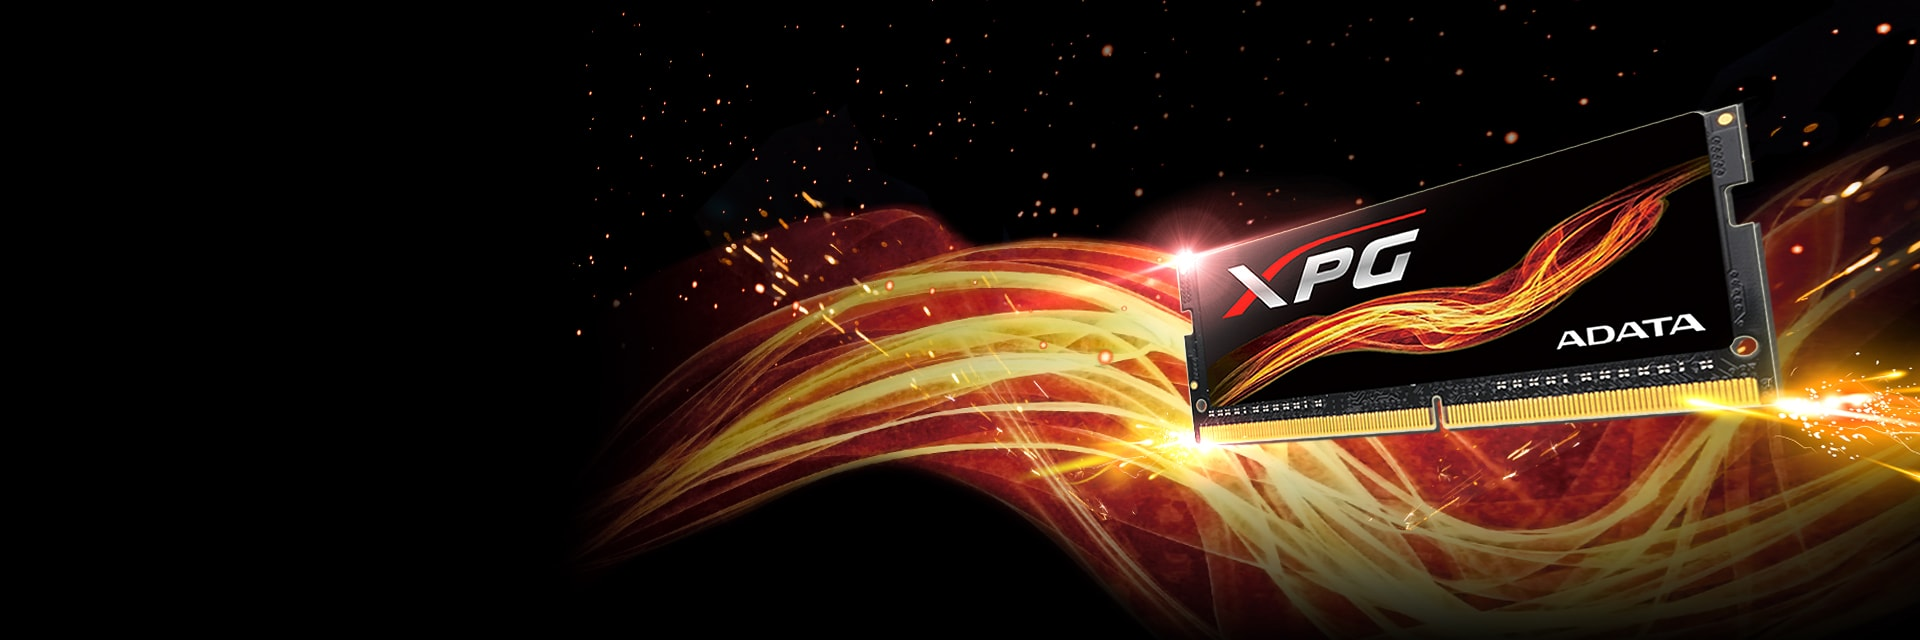 XPG-Flame-DDR4-Memory-Module-SO-DIMM-FLAME-BRIGHTENS-YOUR-GAME